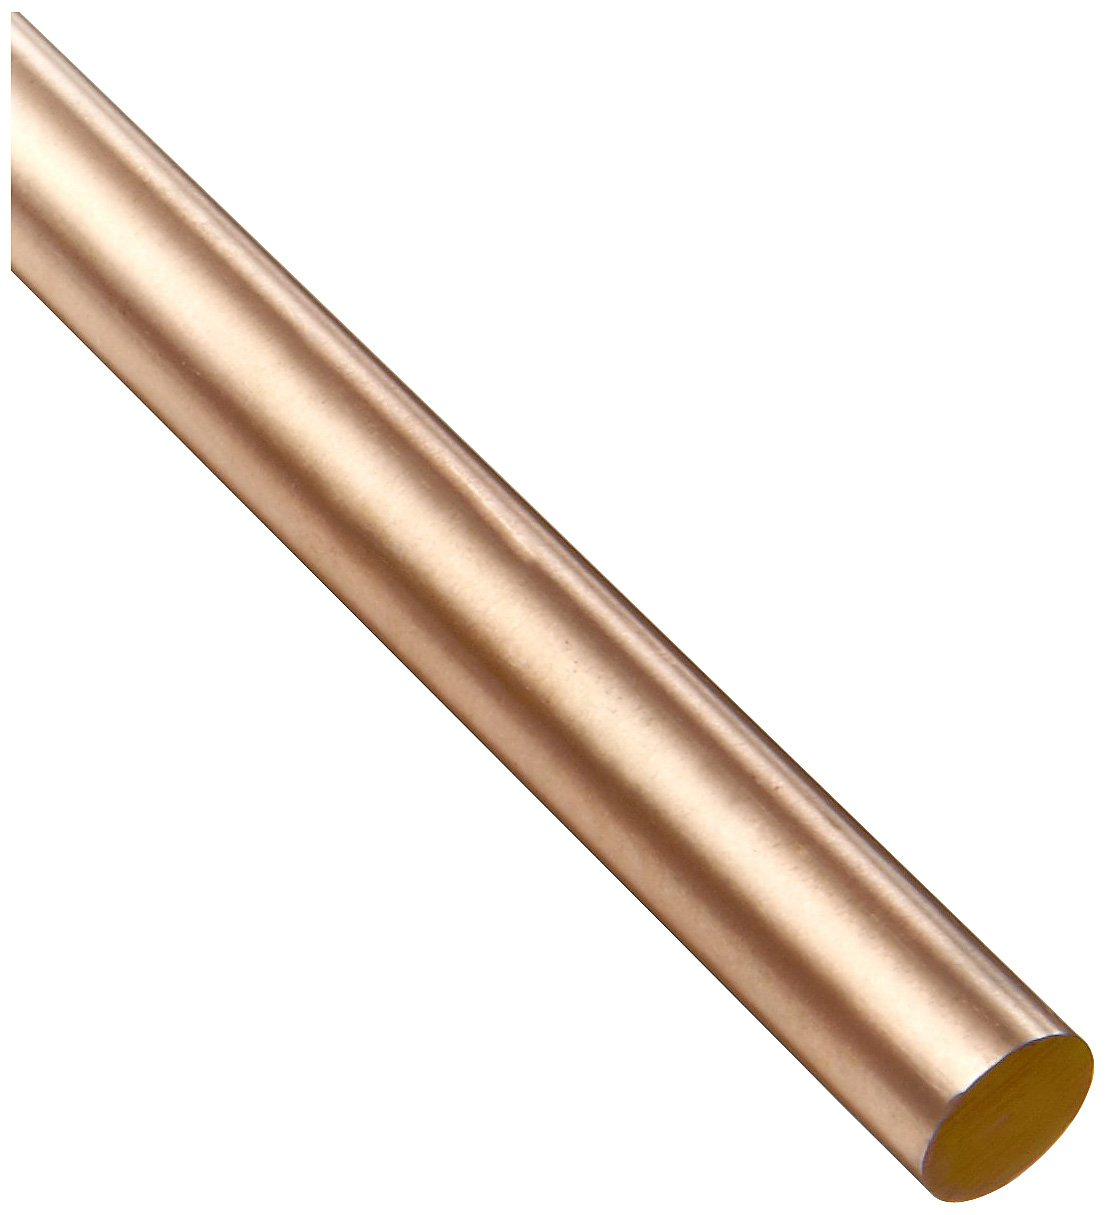 Copper Tungsten Round Rod, Ground, Precision Tolerance, RWMA CL 10, 1/4'' Diameter, 12'' Length by Small Parts